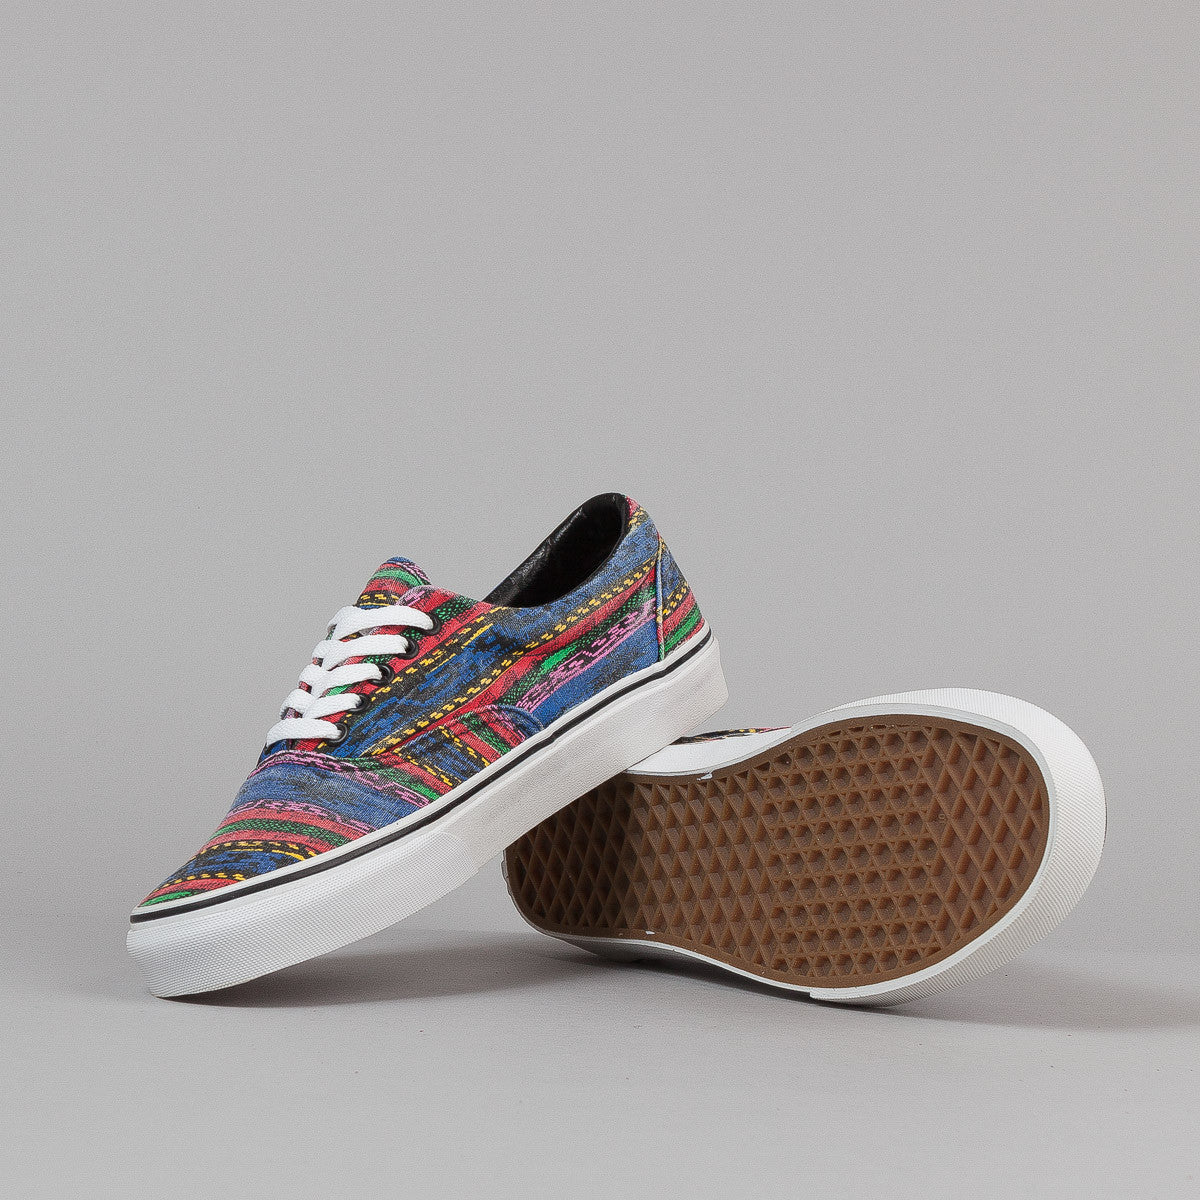 Vans Era Shoes - (Van Doren) Multi / Stripes